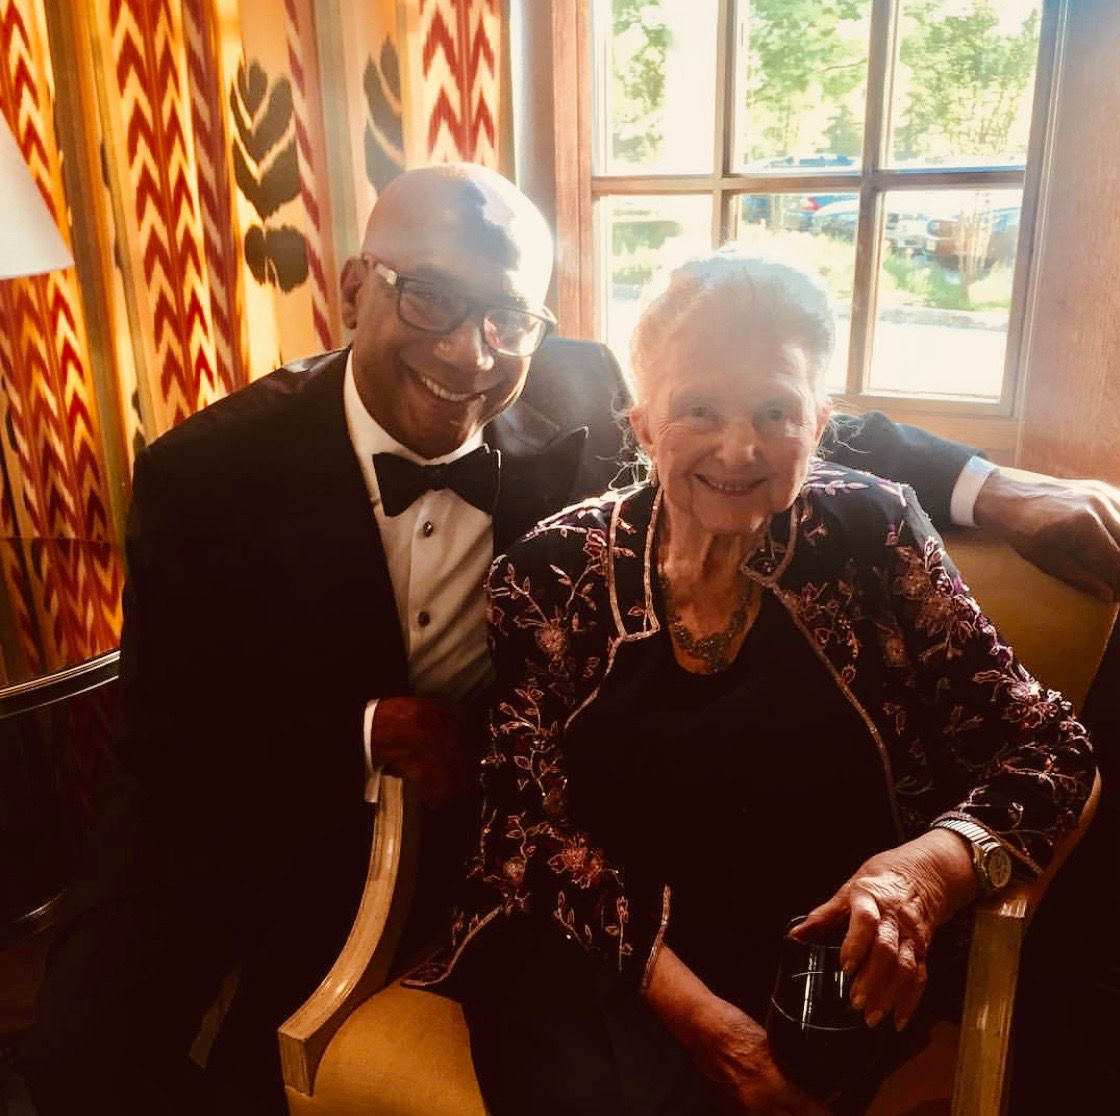 Terry D. Loftis, the executive director of The Arts Community Alliance, or TACA, with the late Caroline Rose Hunt, a Dallas philanthropist who became a mentor and close friend to Loftis.